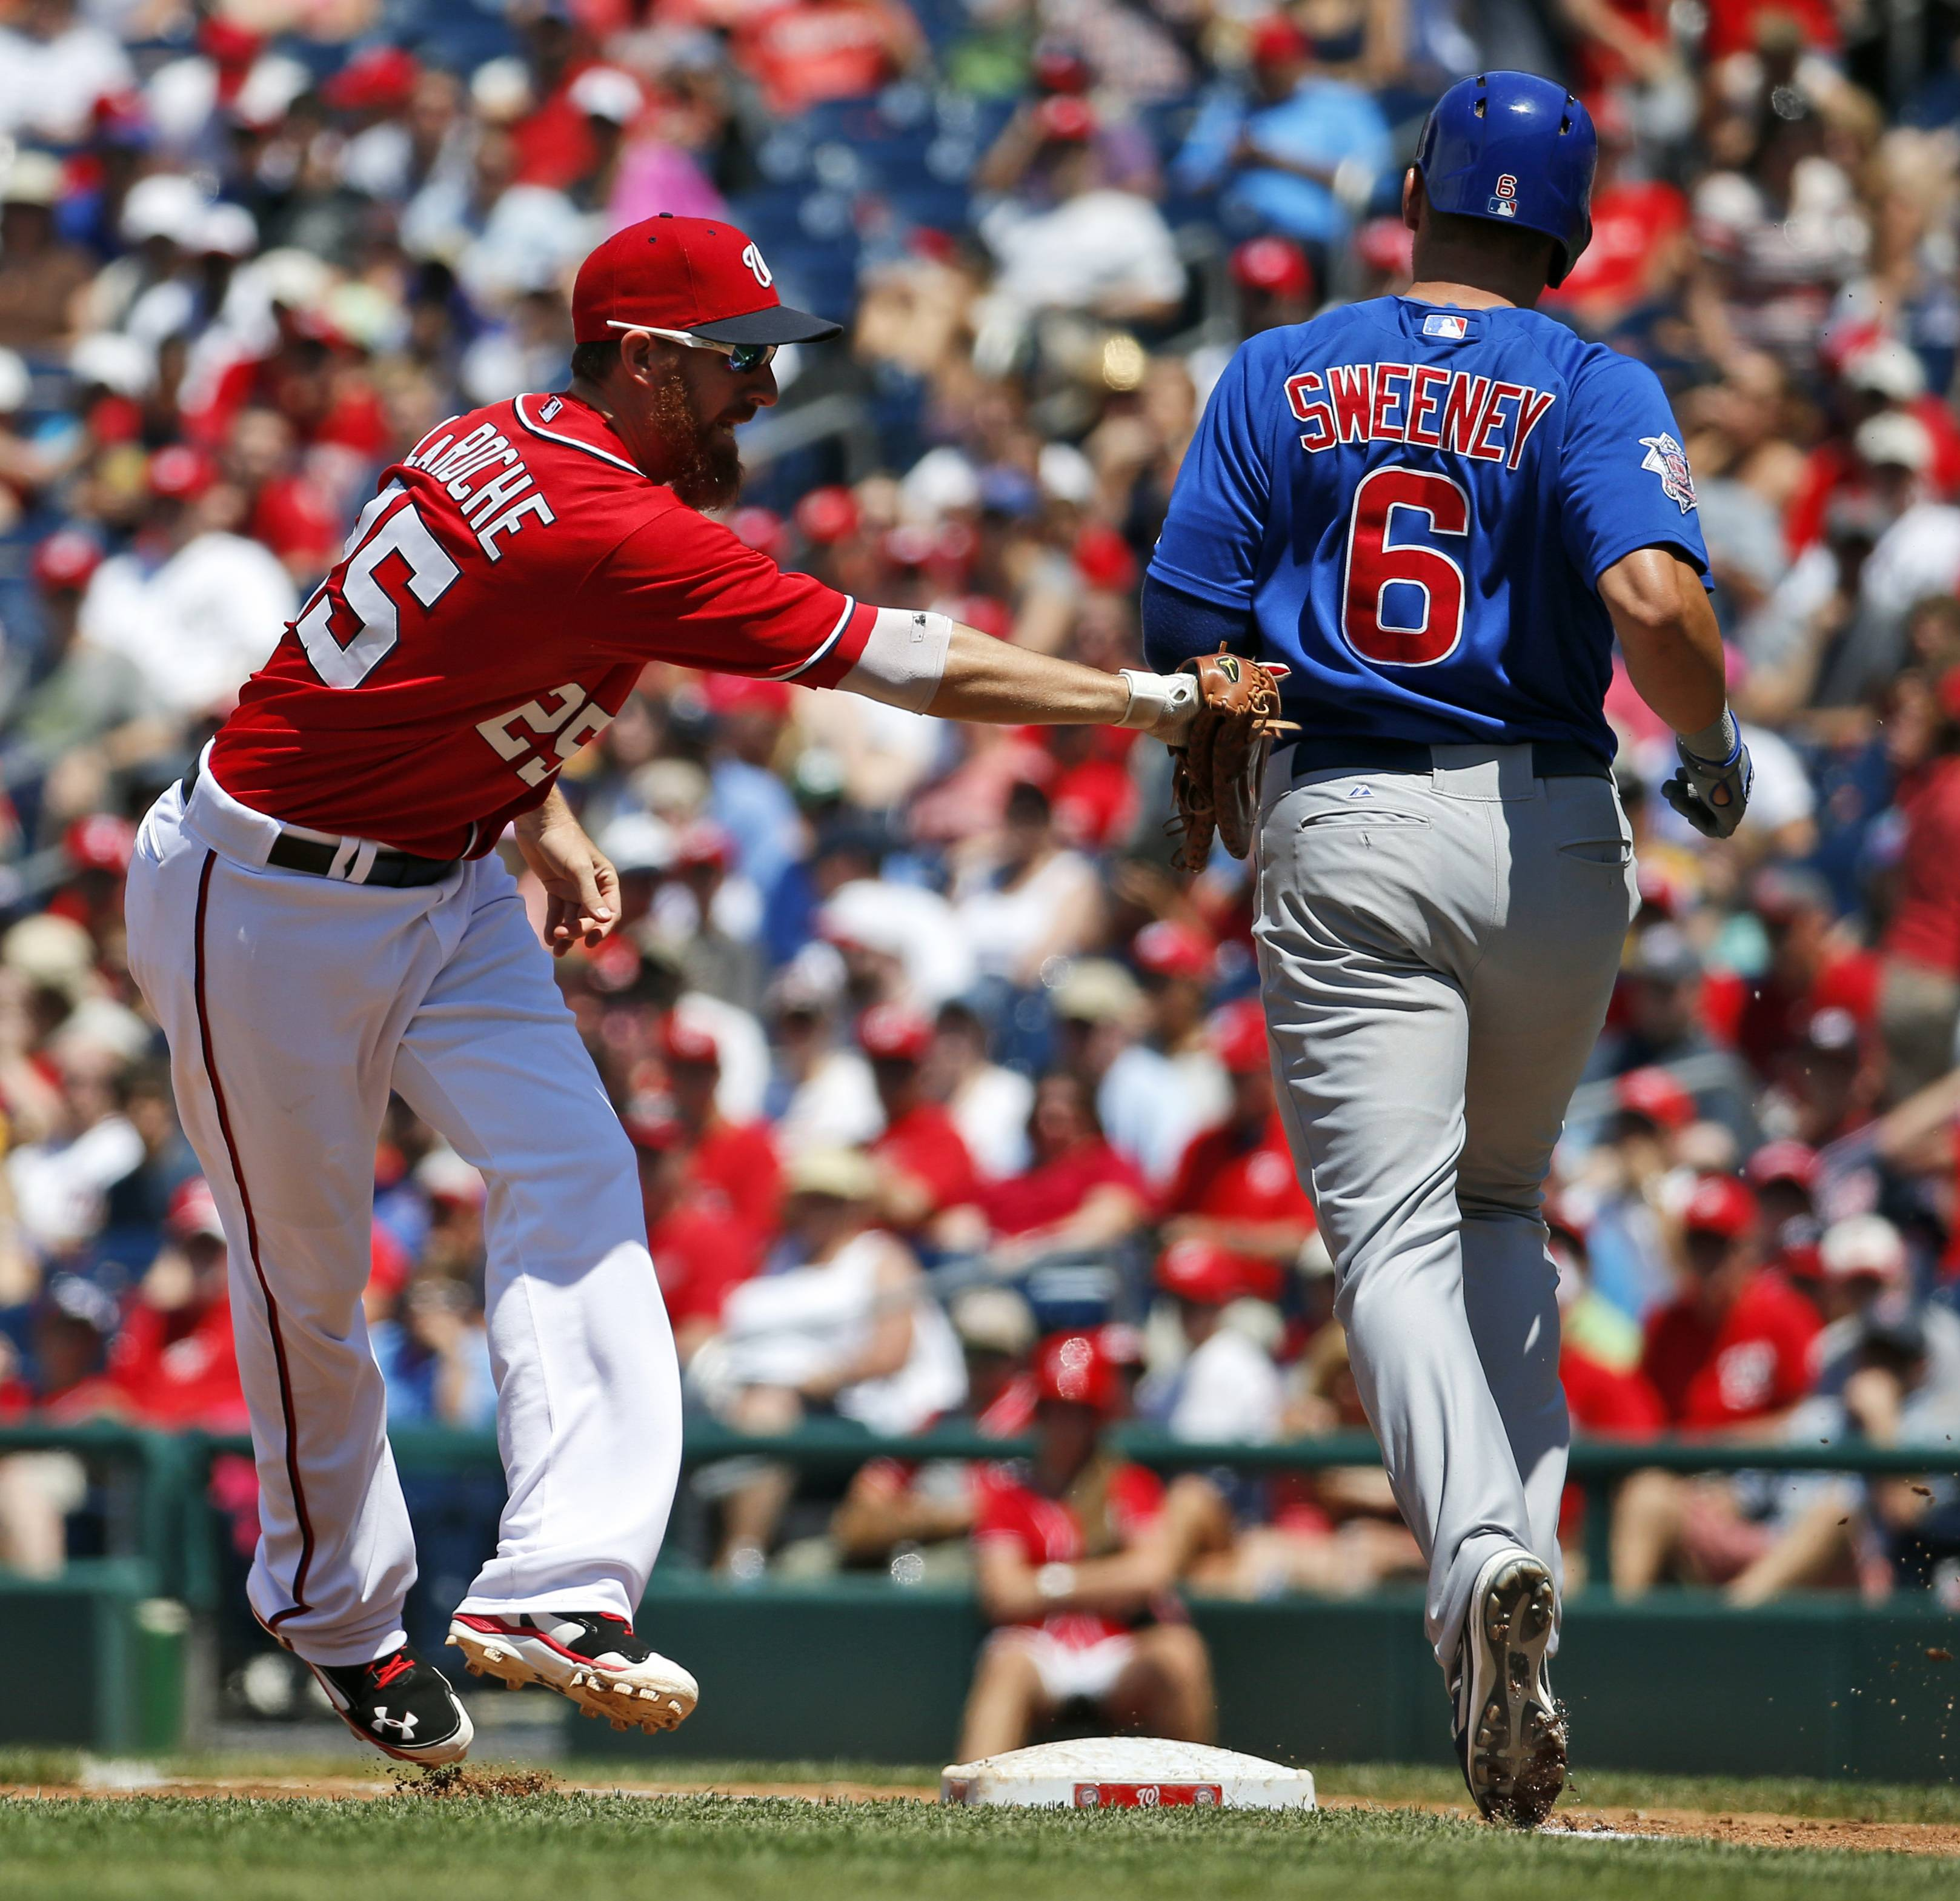 Washington Nationals first baseman Adam LaRoche, left, tags Chicago Cubs' Ryan Sweeney, right, out at first base during the third inning of a baseball game at Nationals Park, Sunday, July 6, 2014, in Washington. Sweeny was called safe, but the play was overturned and he ruled out.